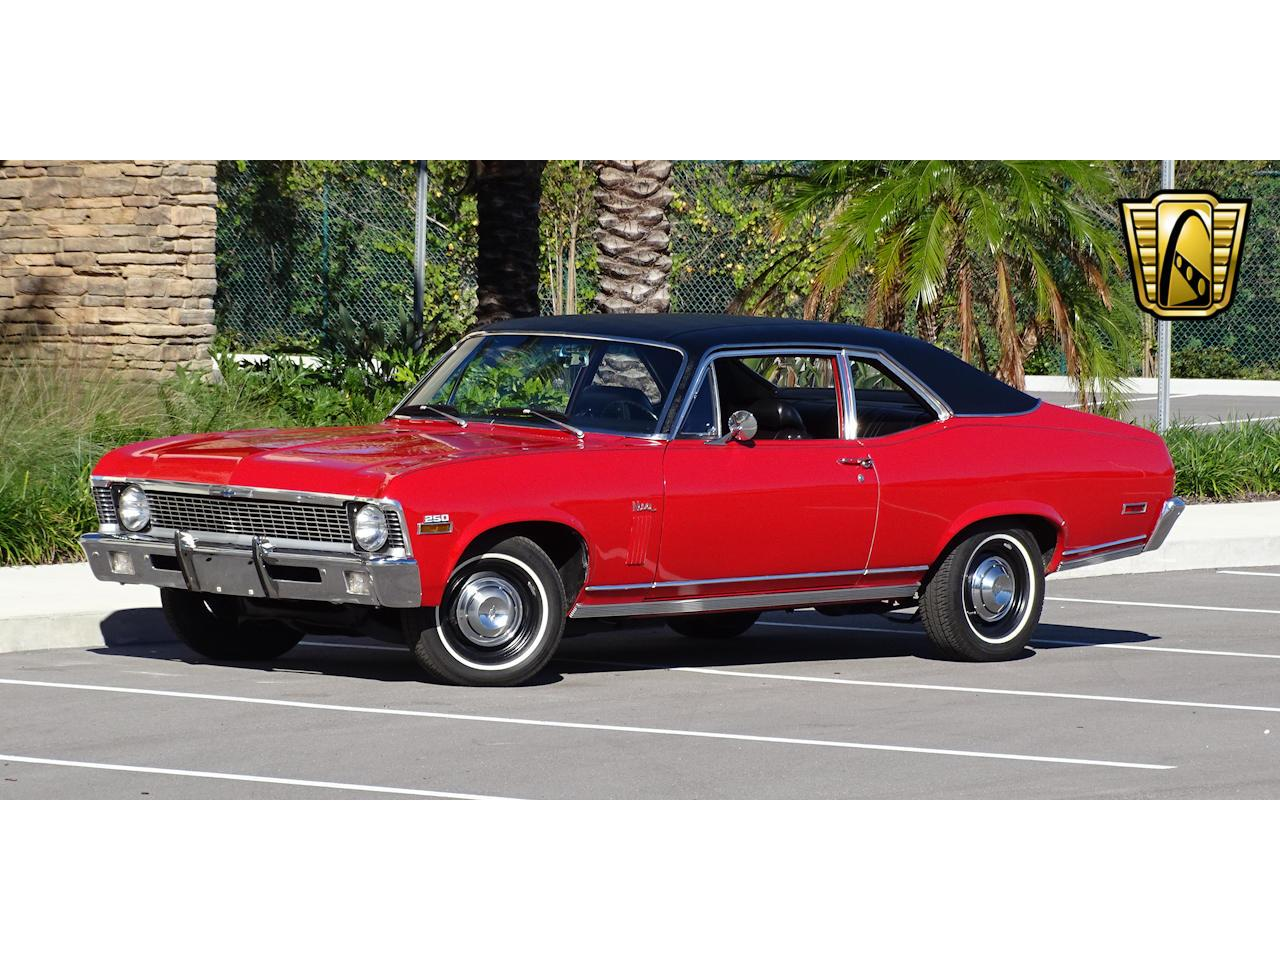 Large Picture of 1970 Chevrolet Nova located in Florida Offered by Gateway Classic Cars - Orlando - MEMB